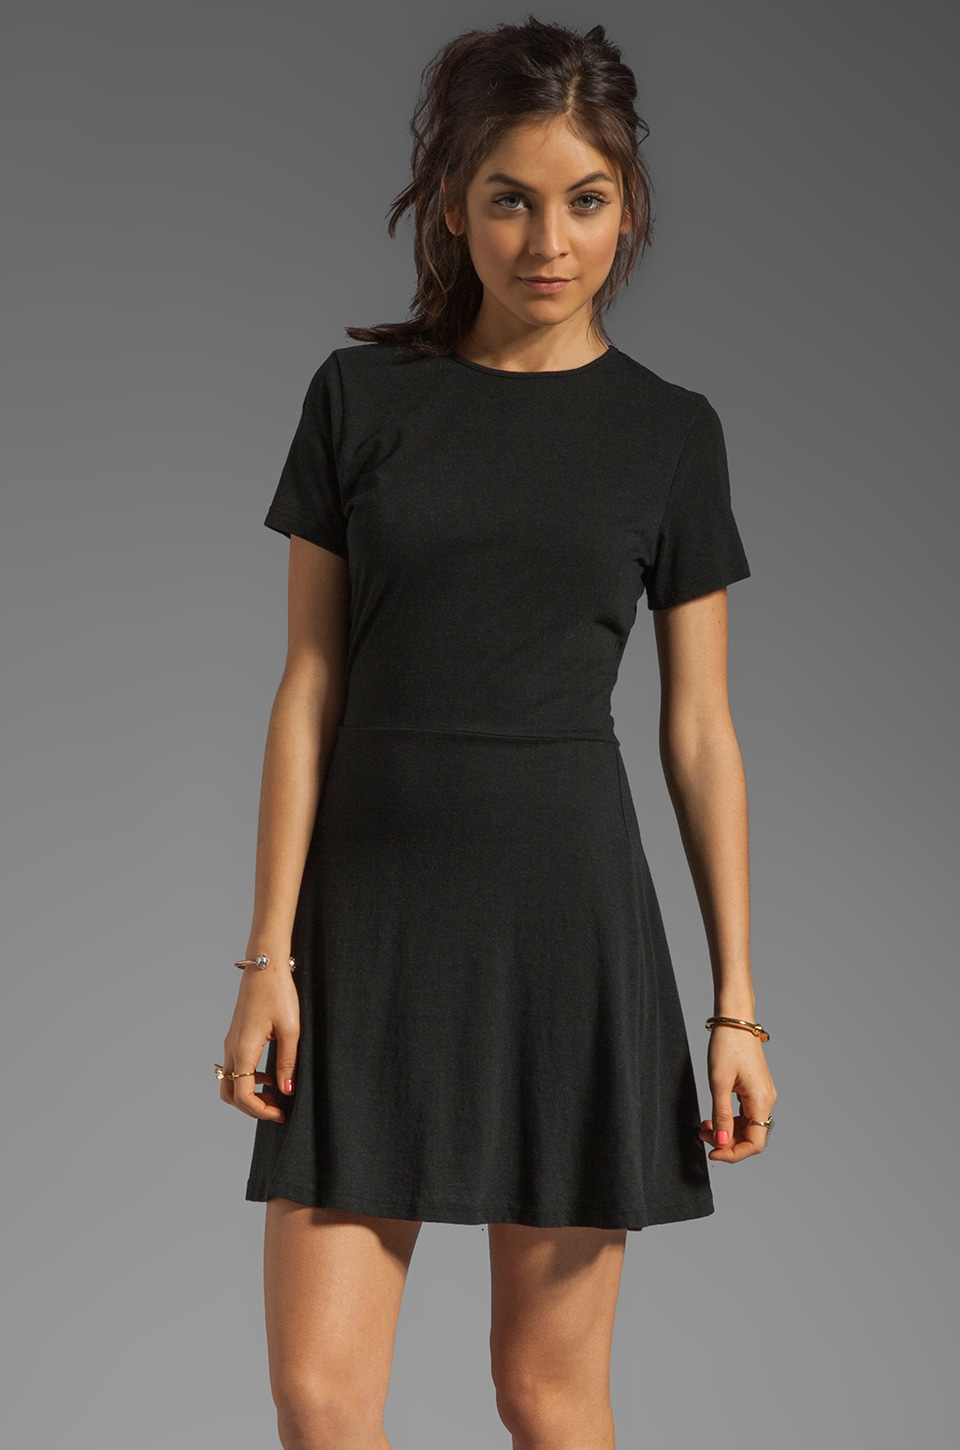 fLuXuS Triblend Sandra Dress in Black